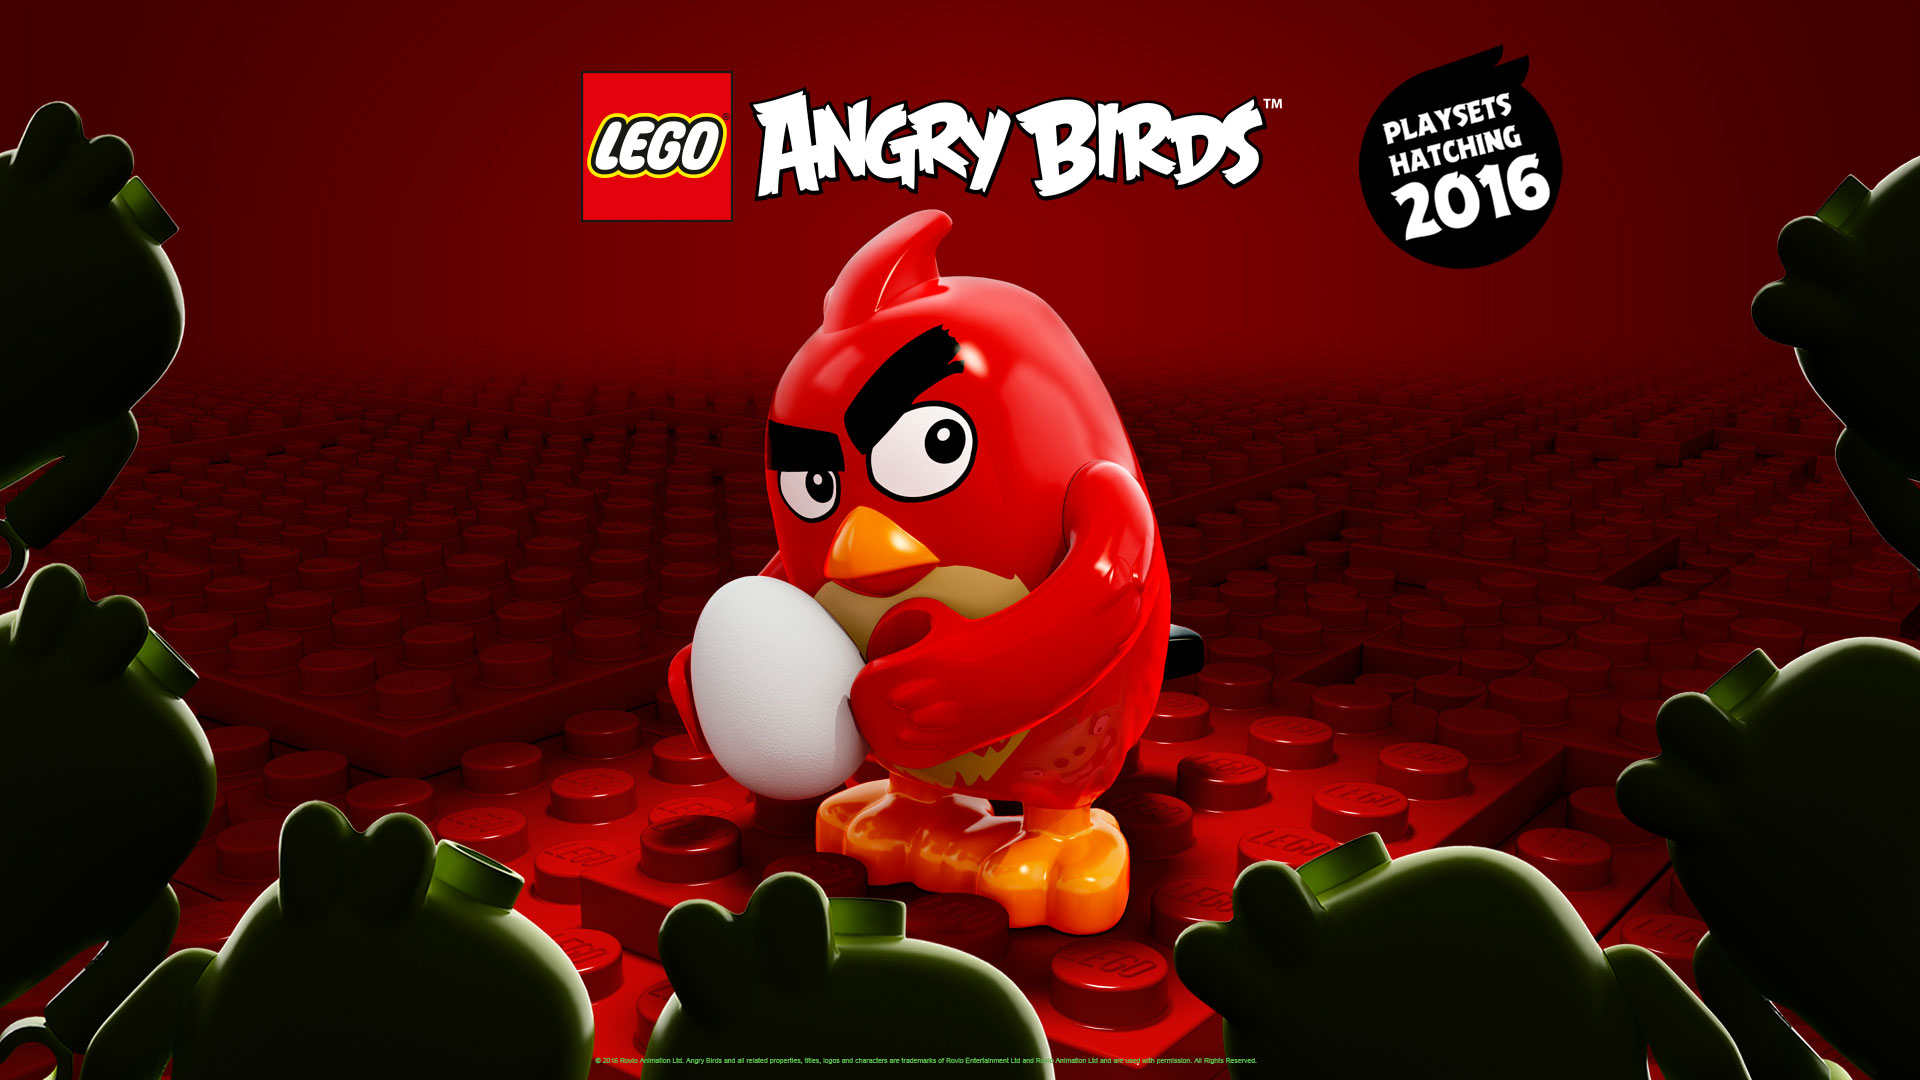 LEGO Angry Birds step out in poster form